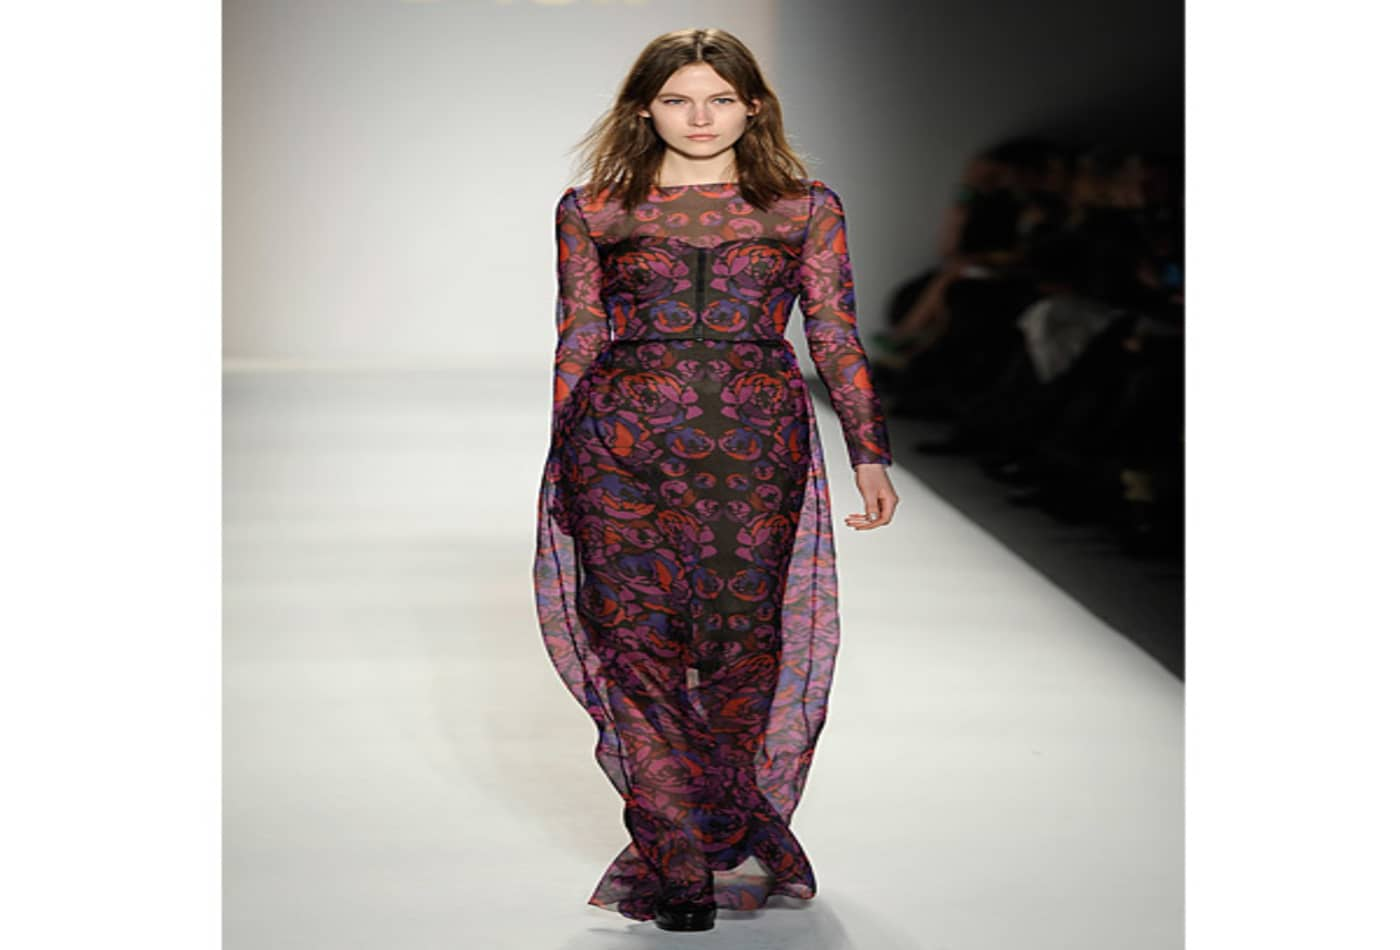 fall-fashion-week-2012-honor-001.jpg